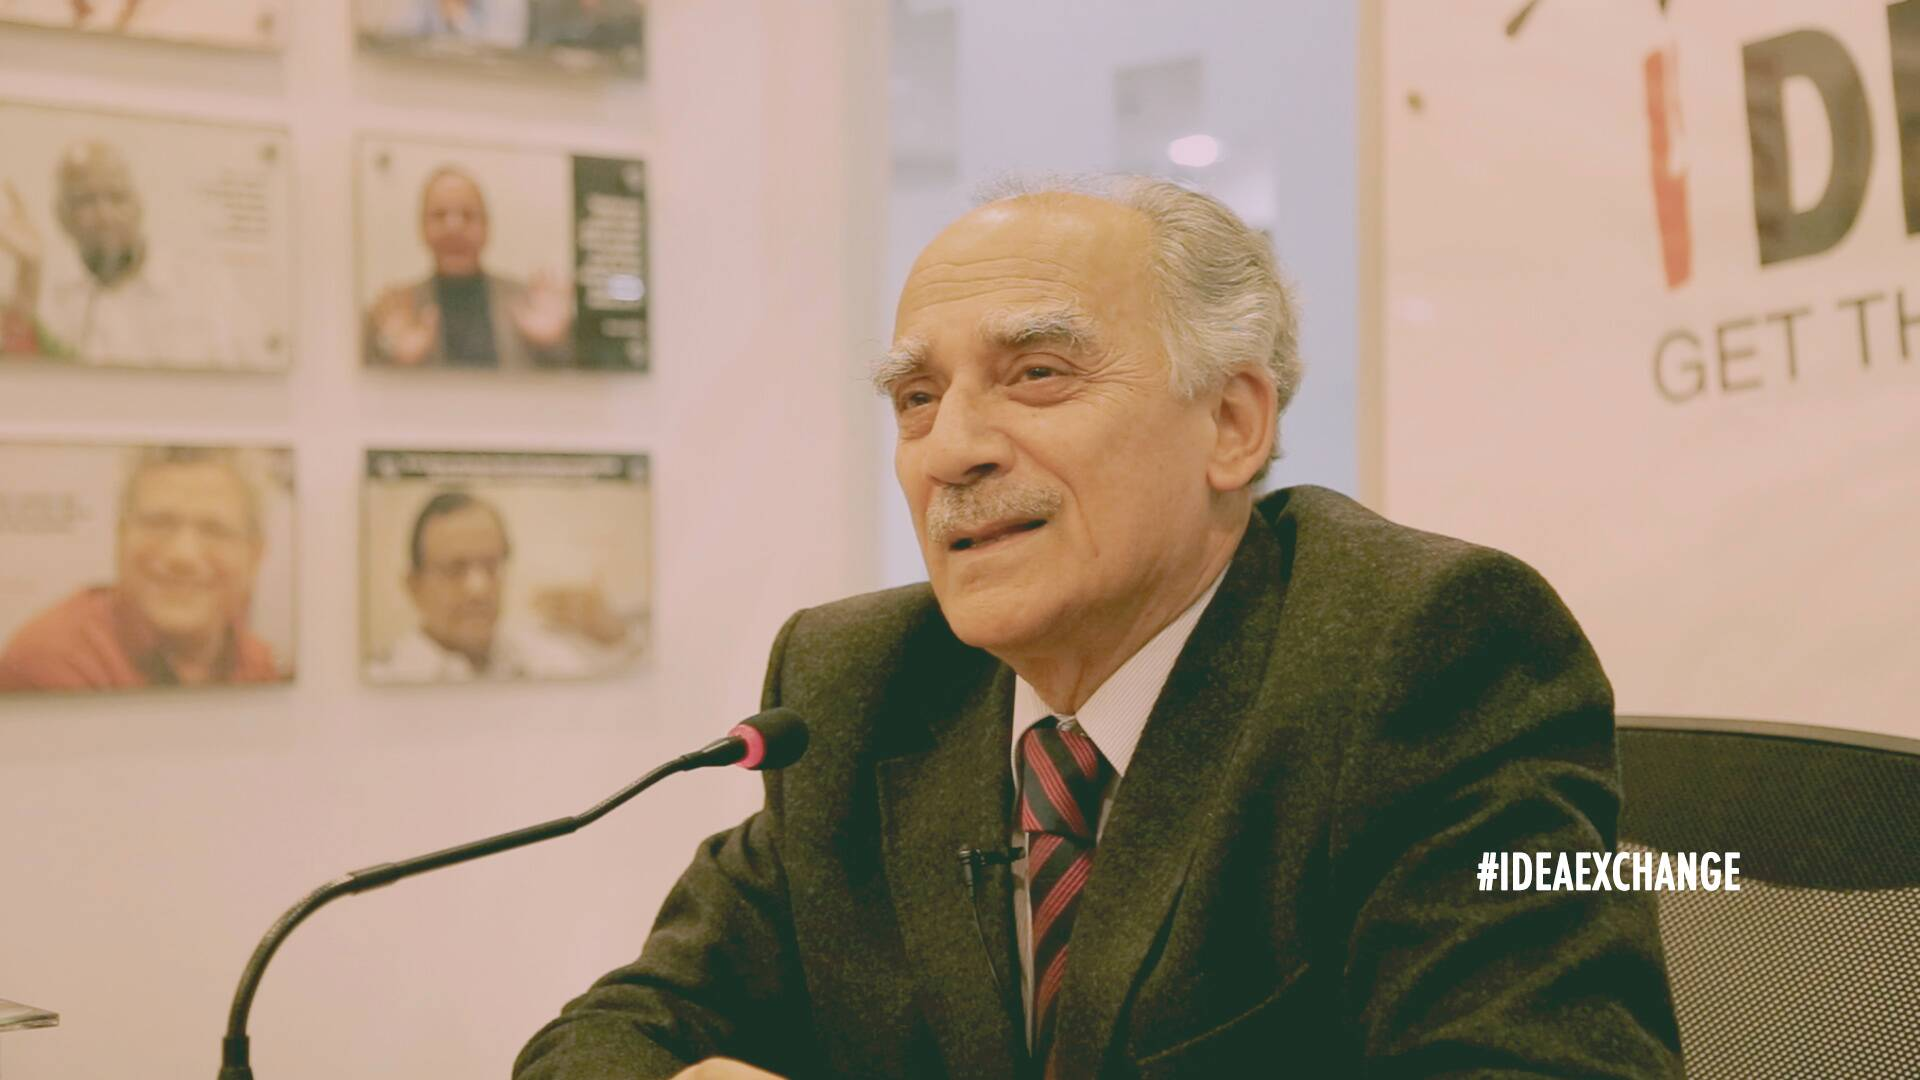 BJP can't talk development in Delhi and Love Jihad in Muzzafarnagar: Arun Shourie